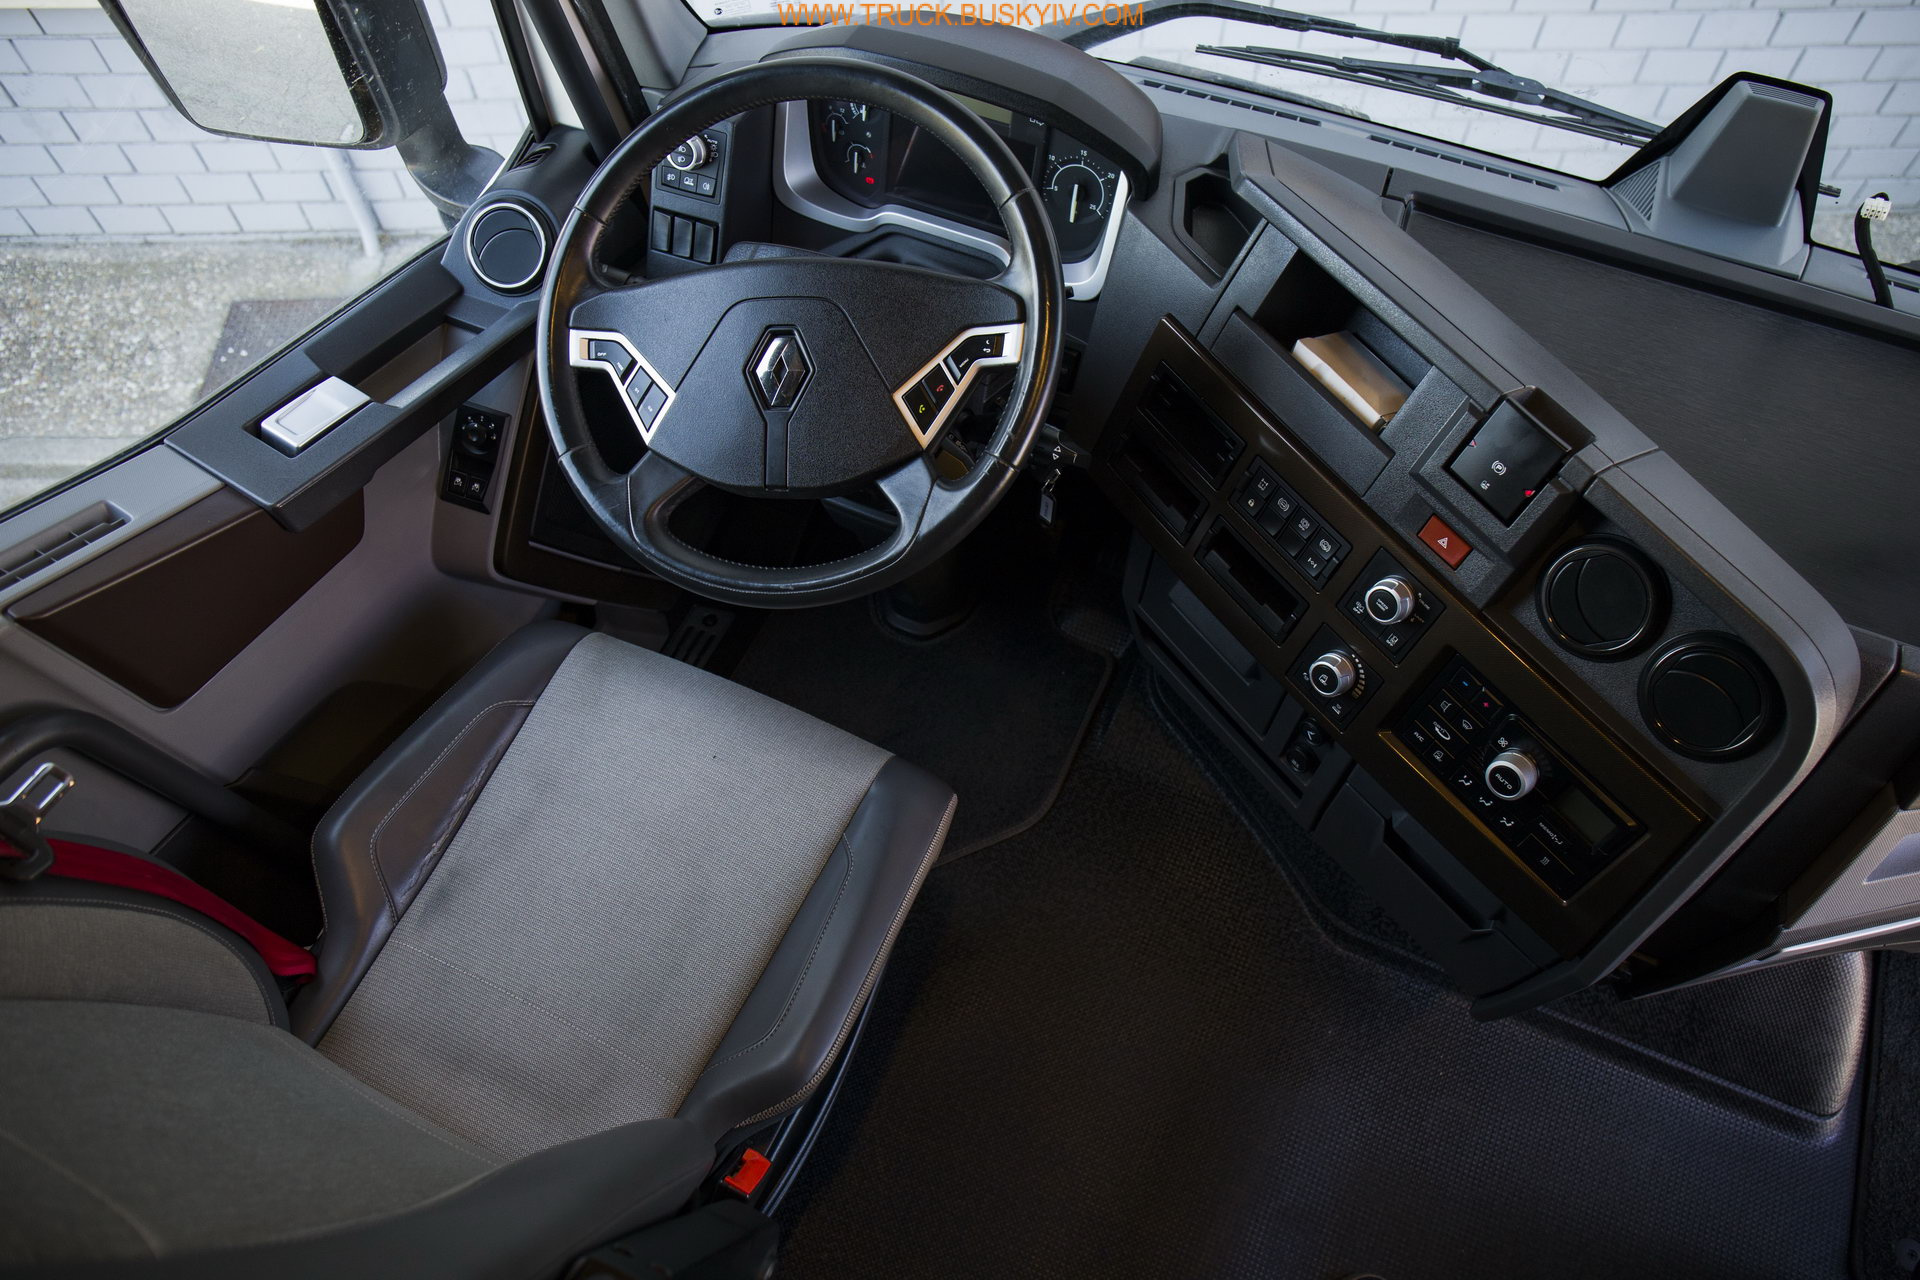 2016_renault_t520_12